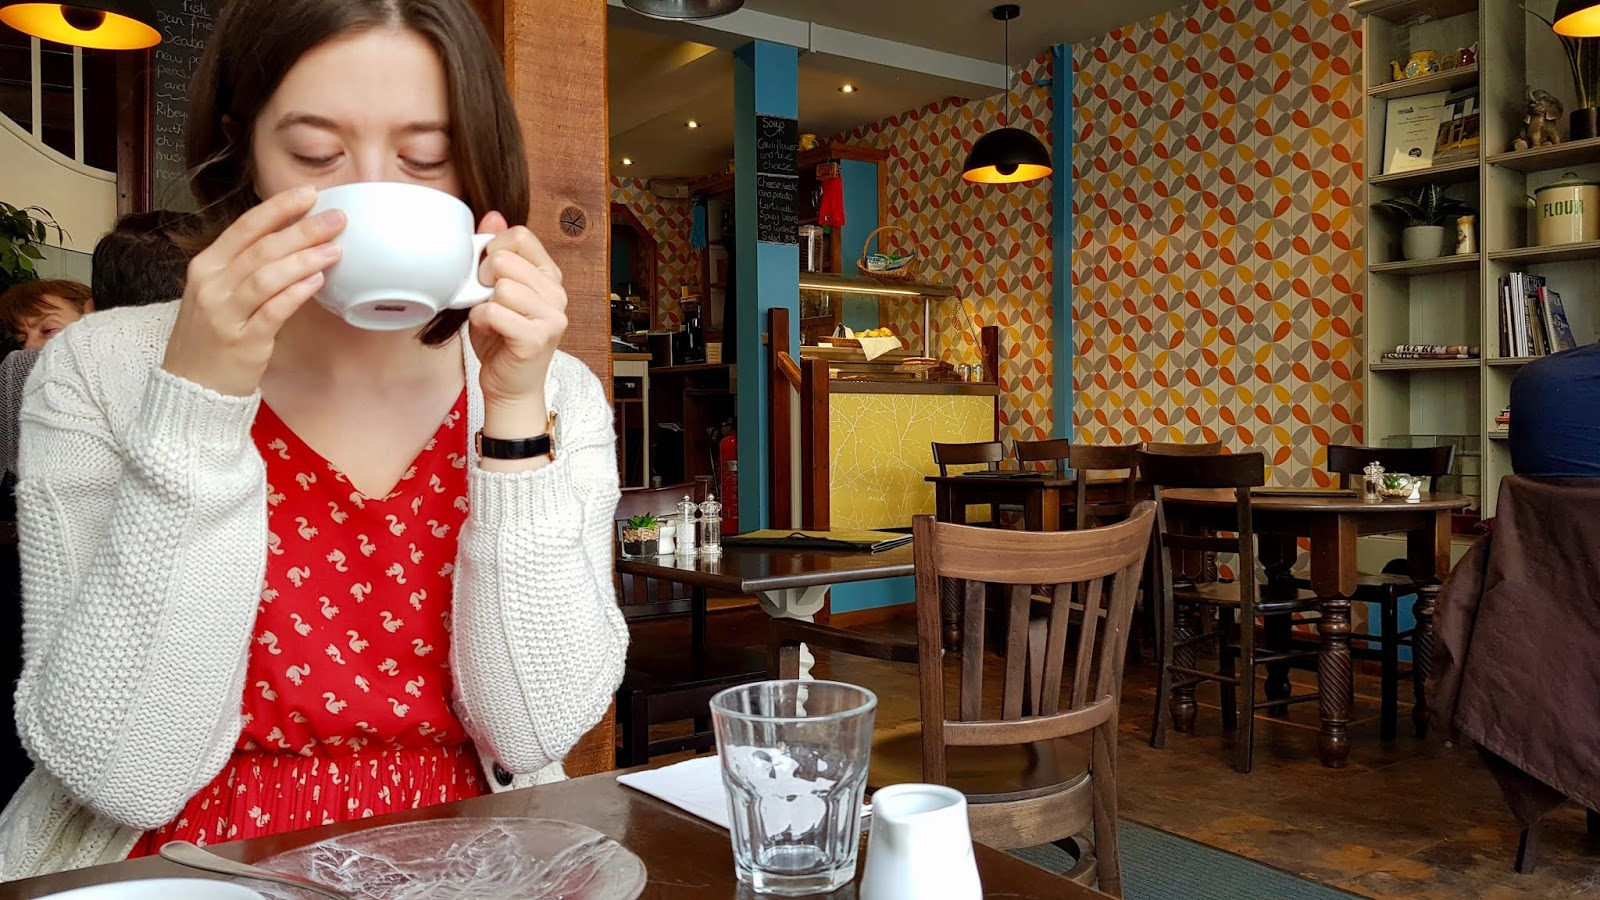 Abbey sipping on a coffee at The Bay Tree Cafe, Bury St Edmunds